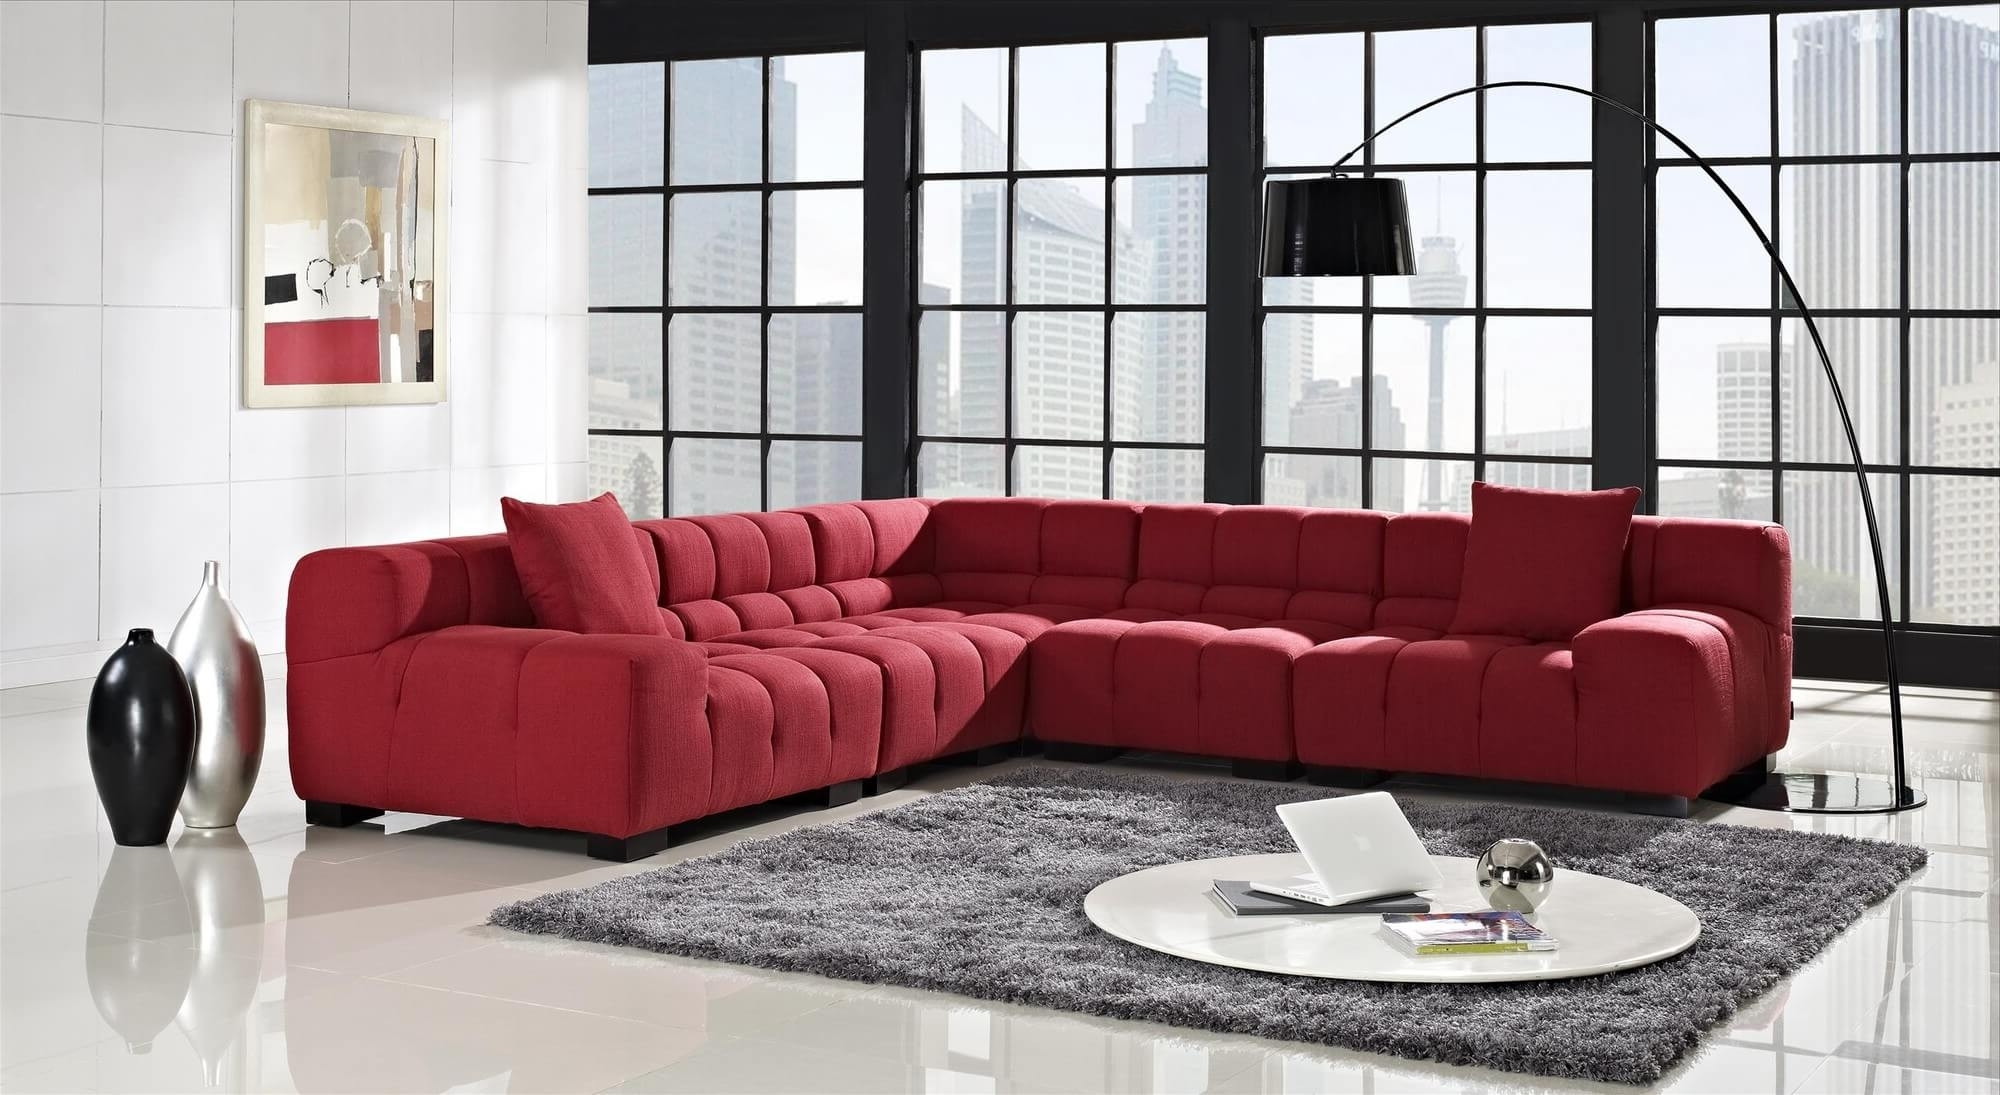 Tufted Sectional Sofas In Current 18 Stylish Modern Red Sectional Sofas (View 12 of 20)